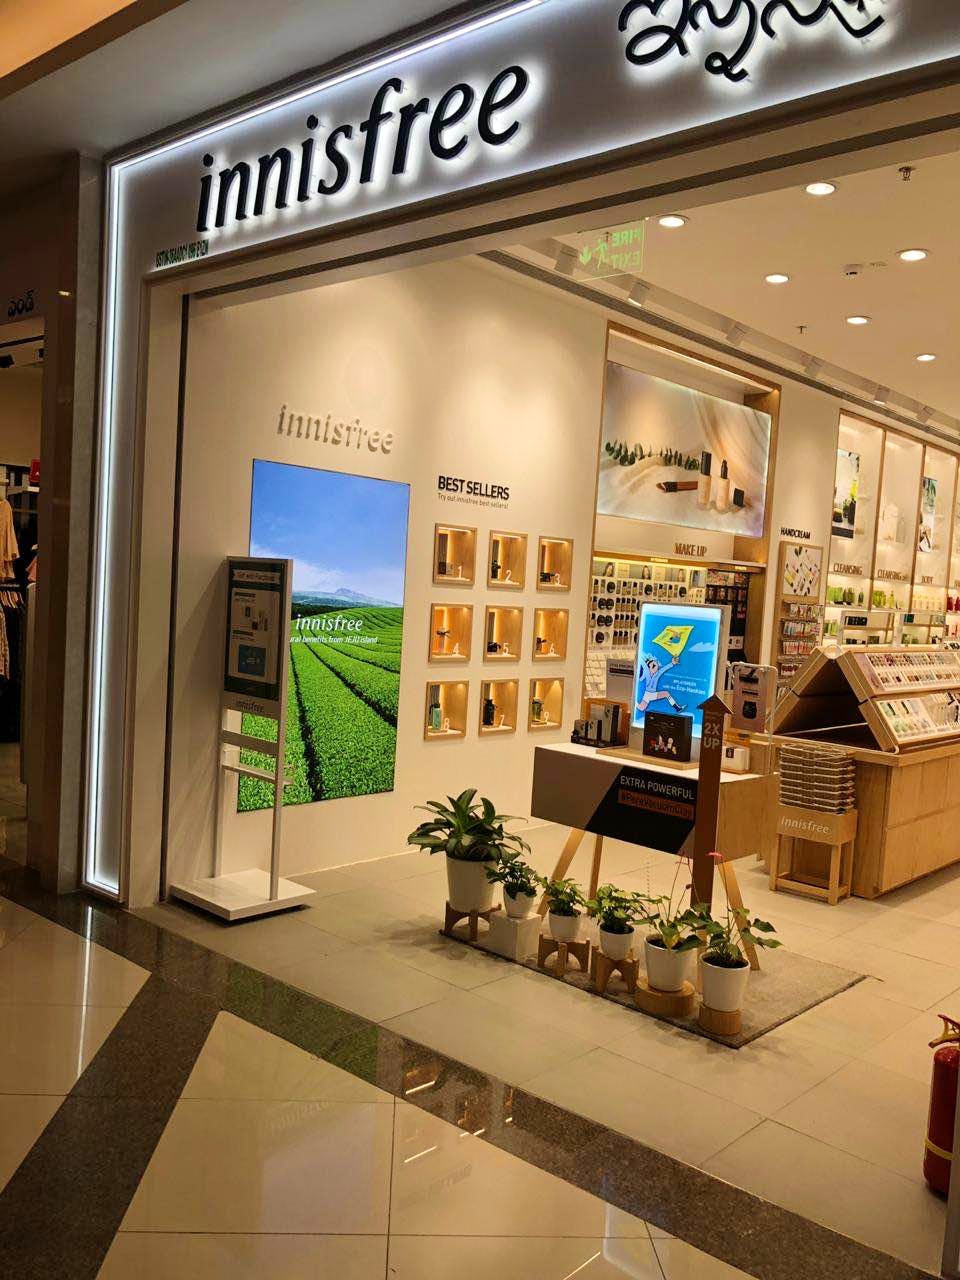 Product,Building,Outlet store,Shopping mall,Interior design,Retail,Footwear,Display case,Display window,Trade